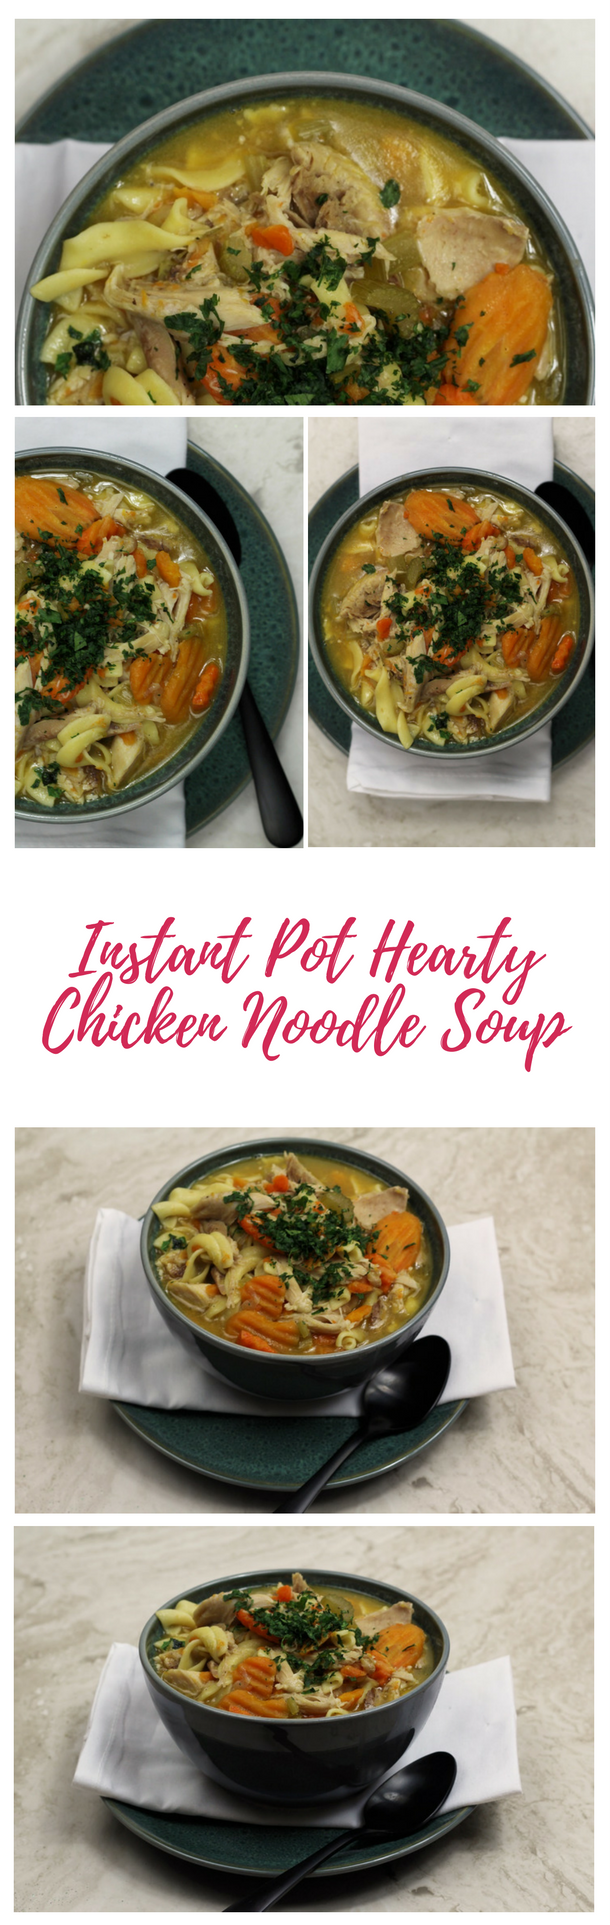 Instant Pot Hearty Chicken Noodle Soup